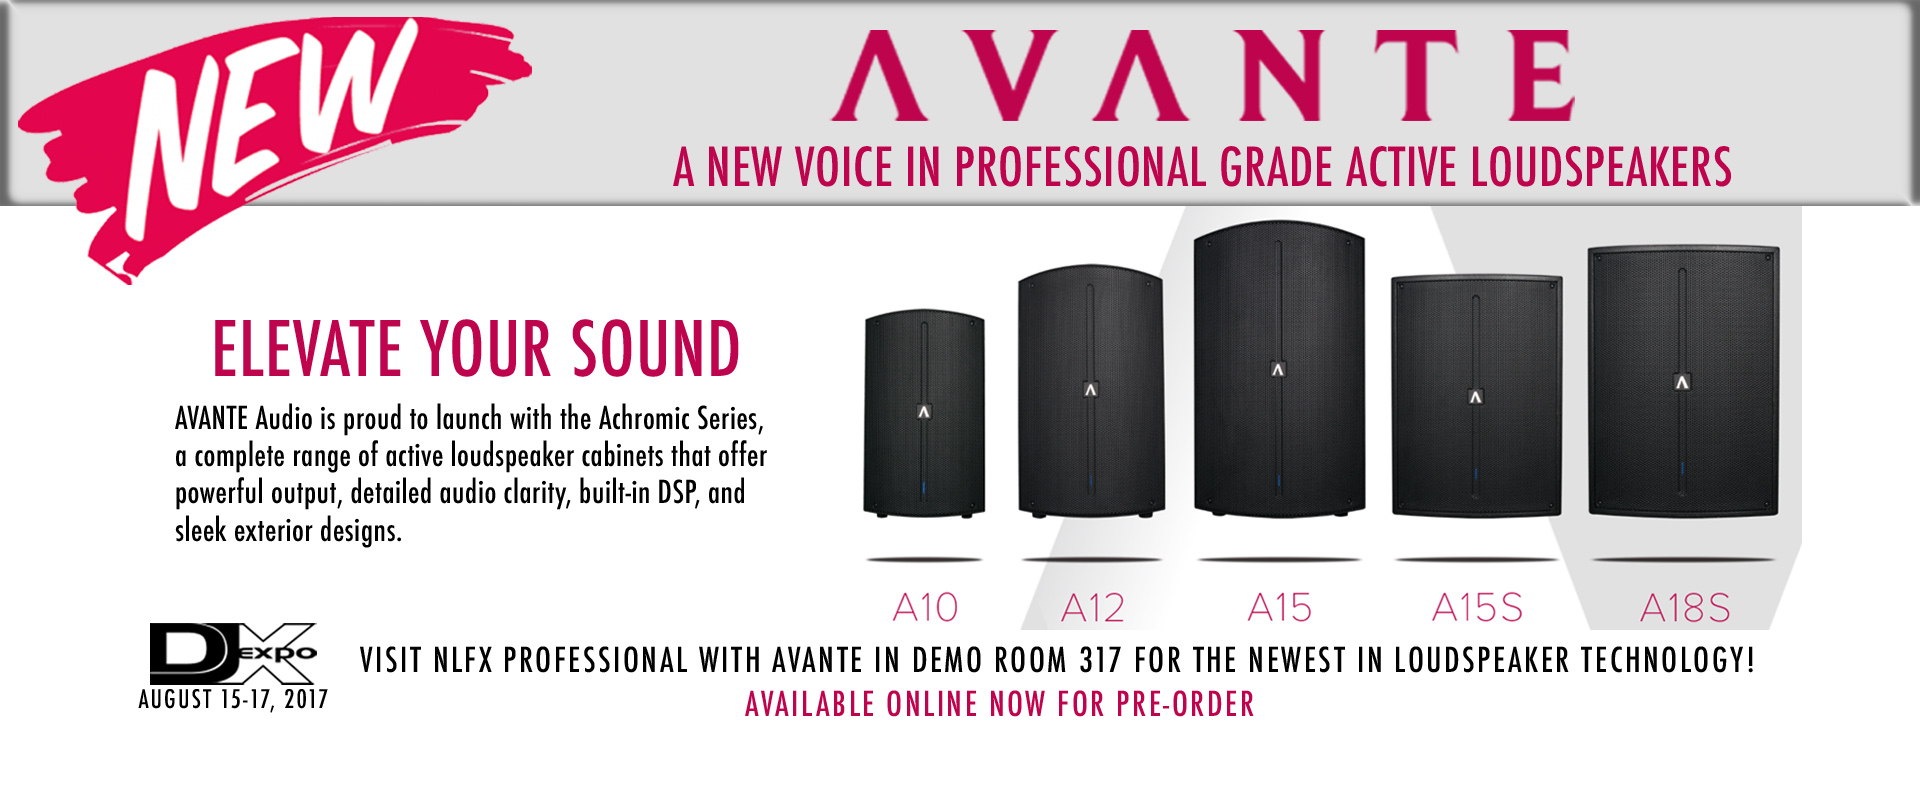 Avante - A new voice in professional grade active loudspeakers - DJExpo with NLFX Professional in Demo Room 317